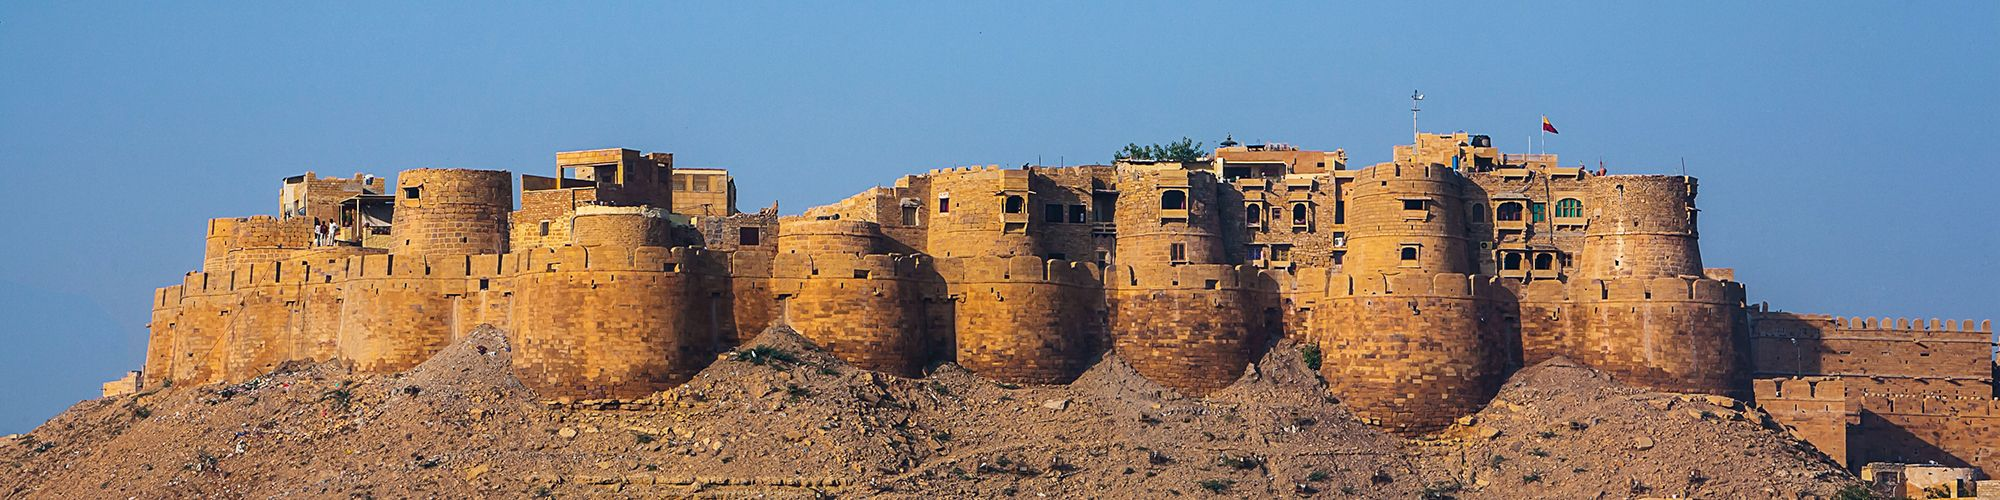 Fort, Jaisalmer, Rajasthan, India